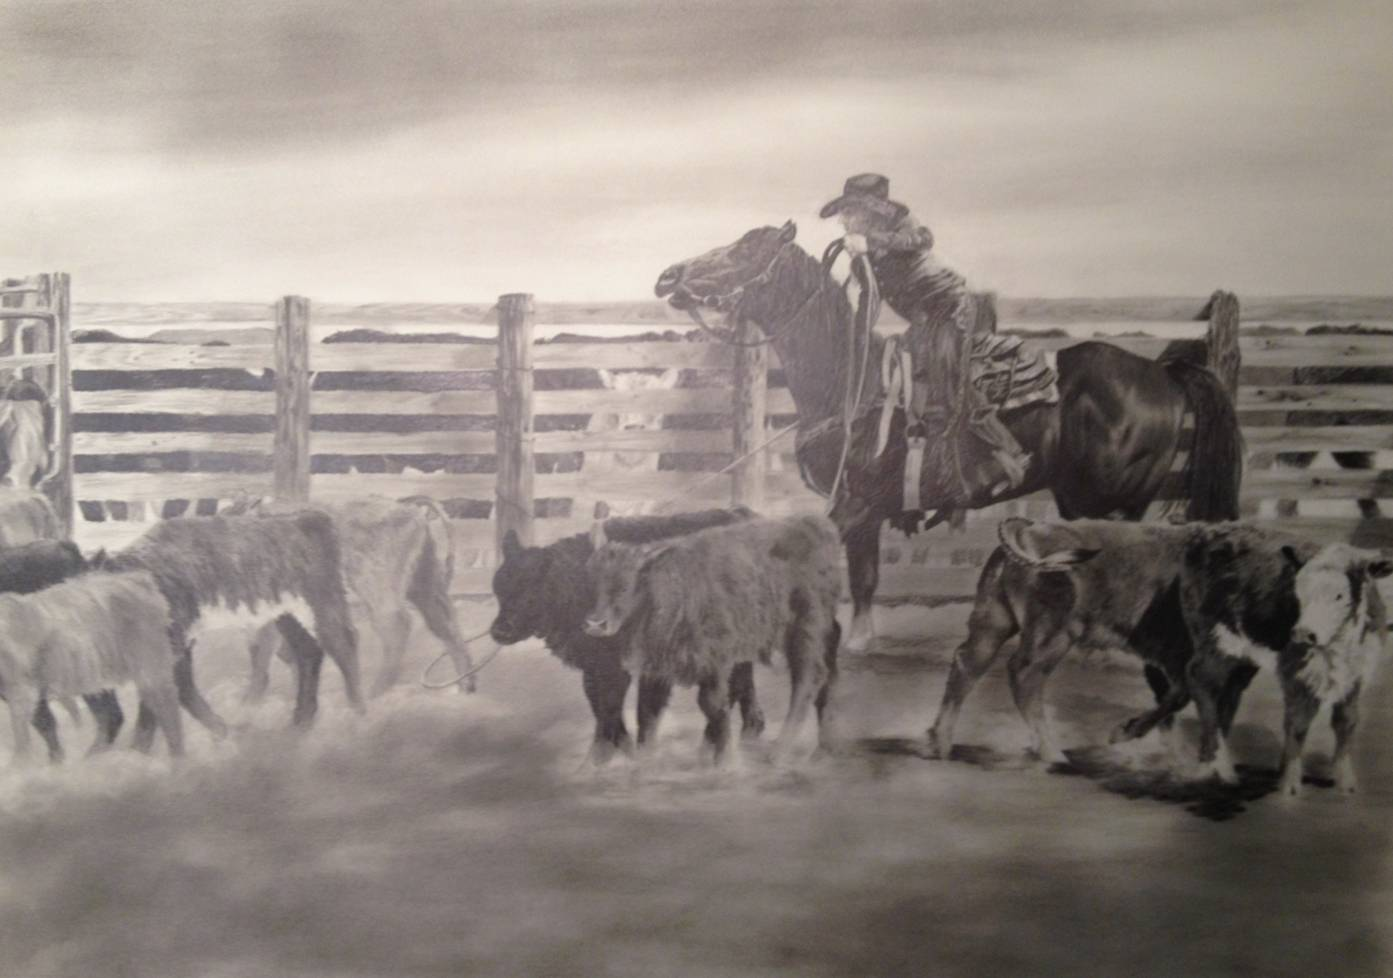 1393x978 Shades Of Graphite Pencil Drawings From The Artist, Geri Dunn